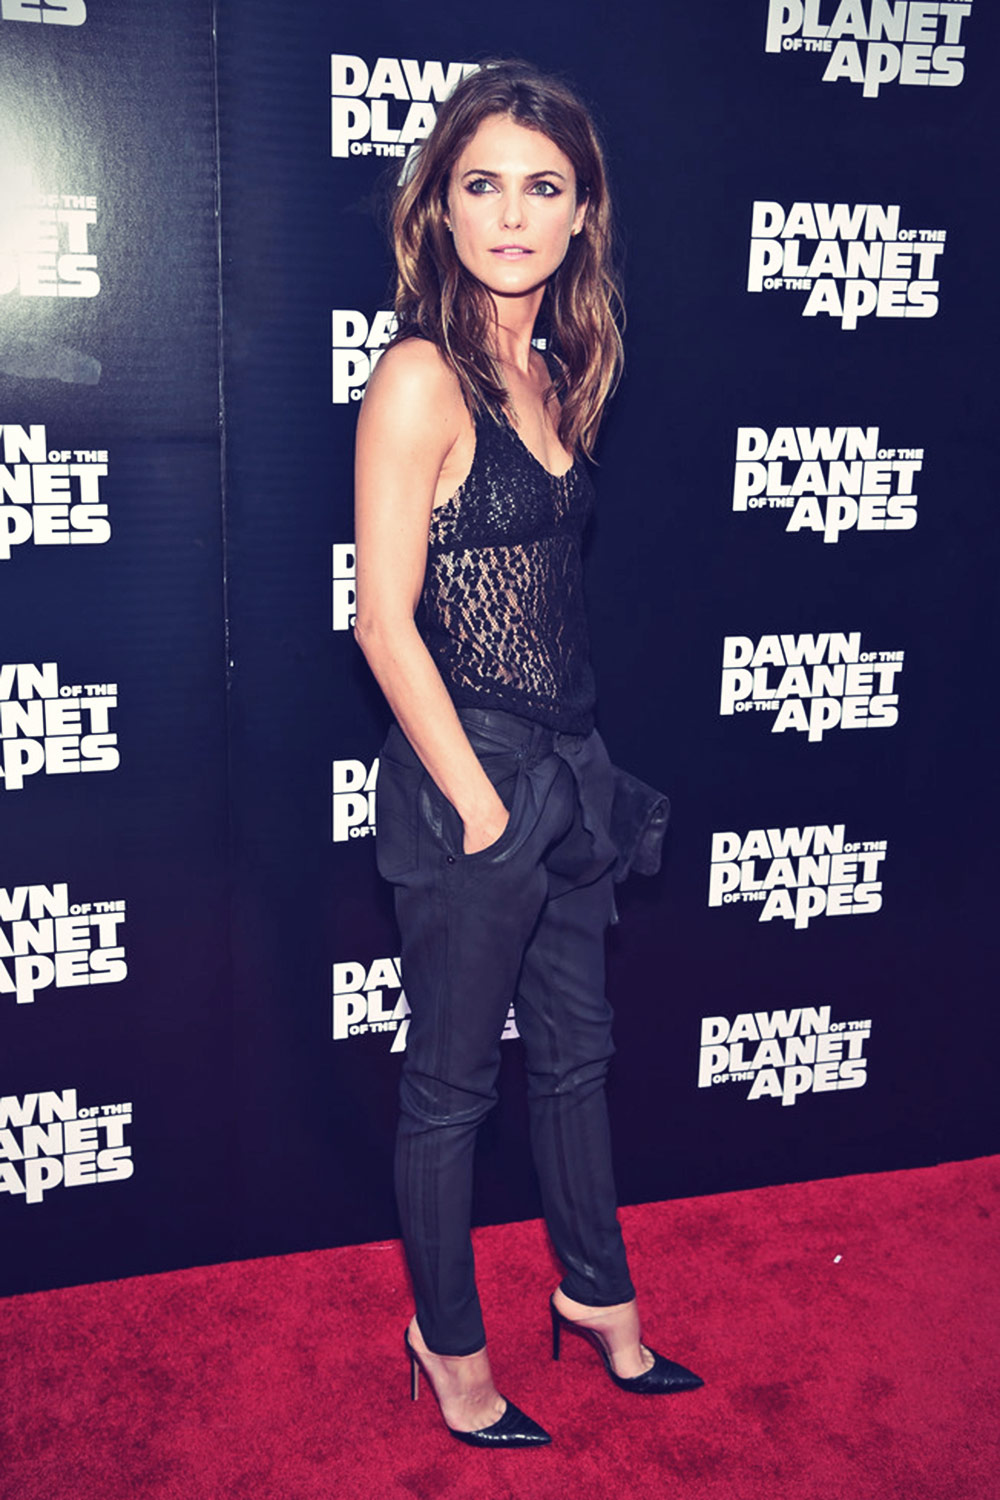 Keri Russell attends the Dawn Of The Planets Of The Apes premiere